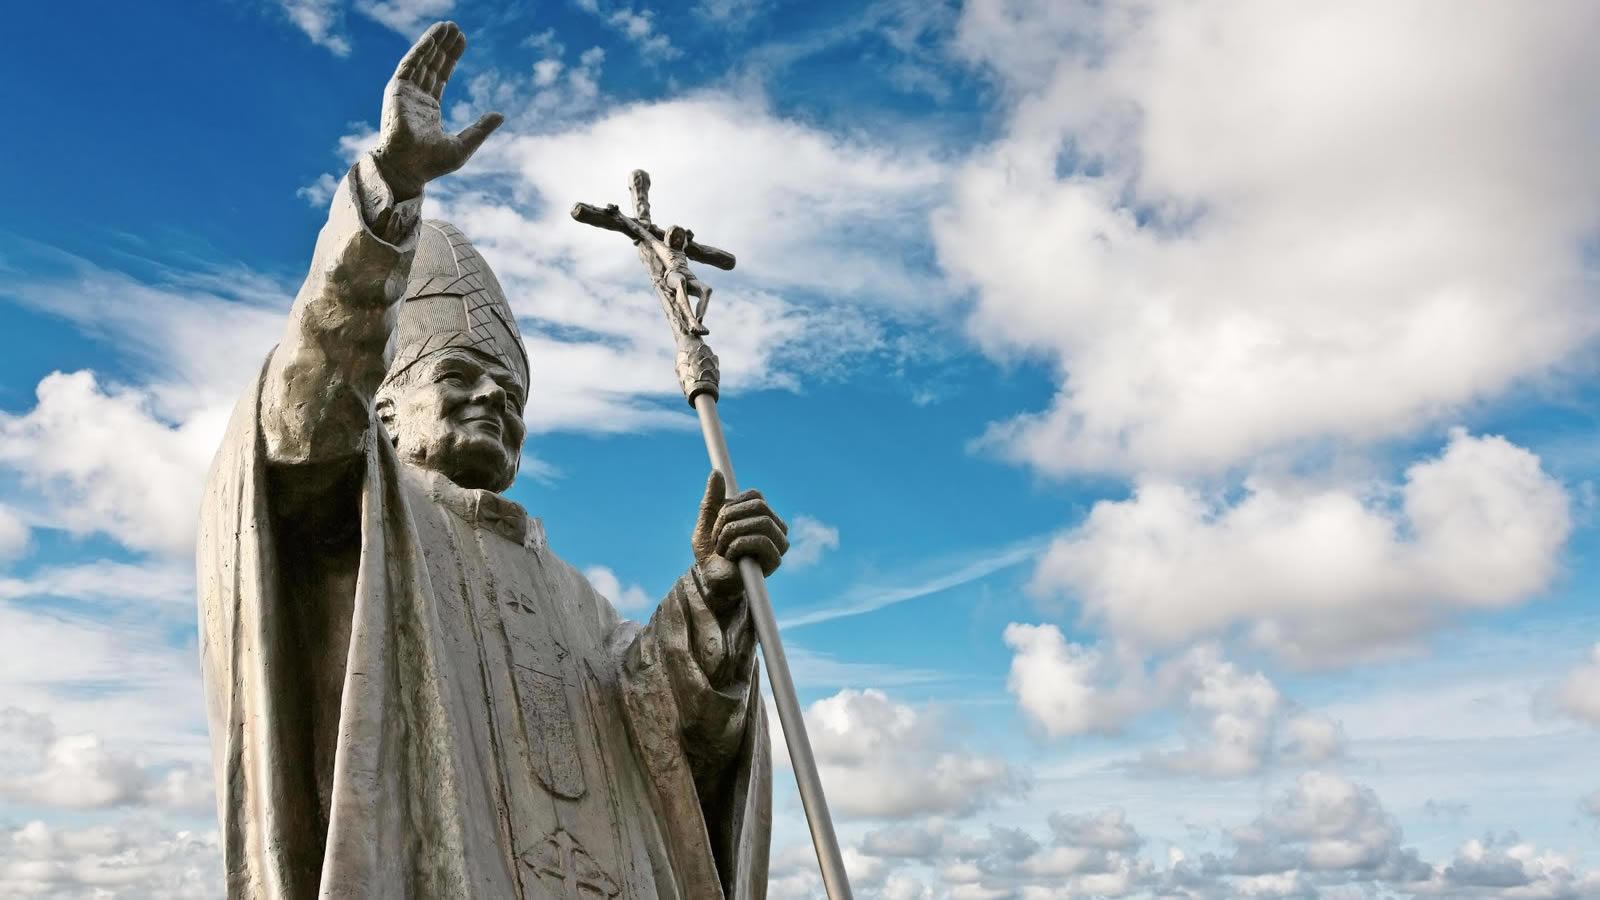 Statue of Blessed Pope John Paul II